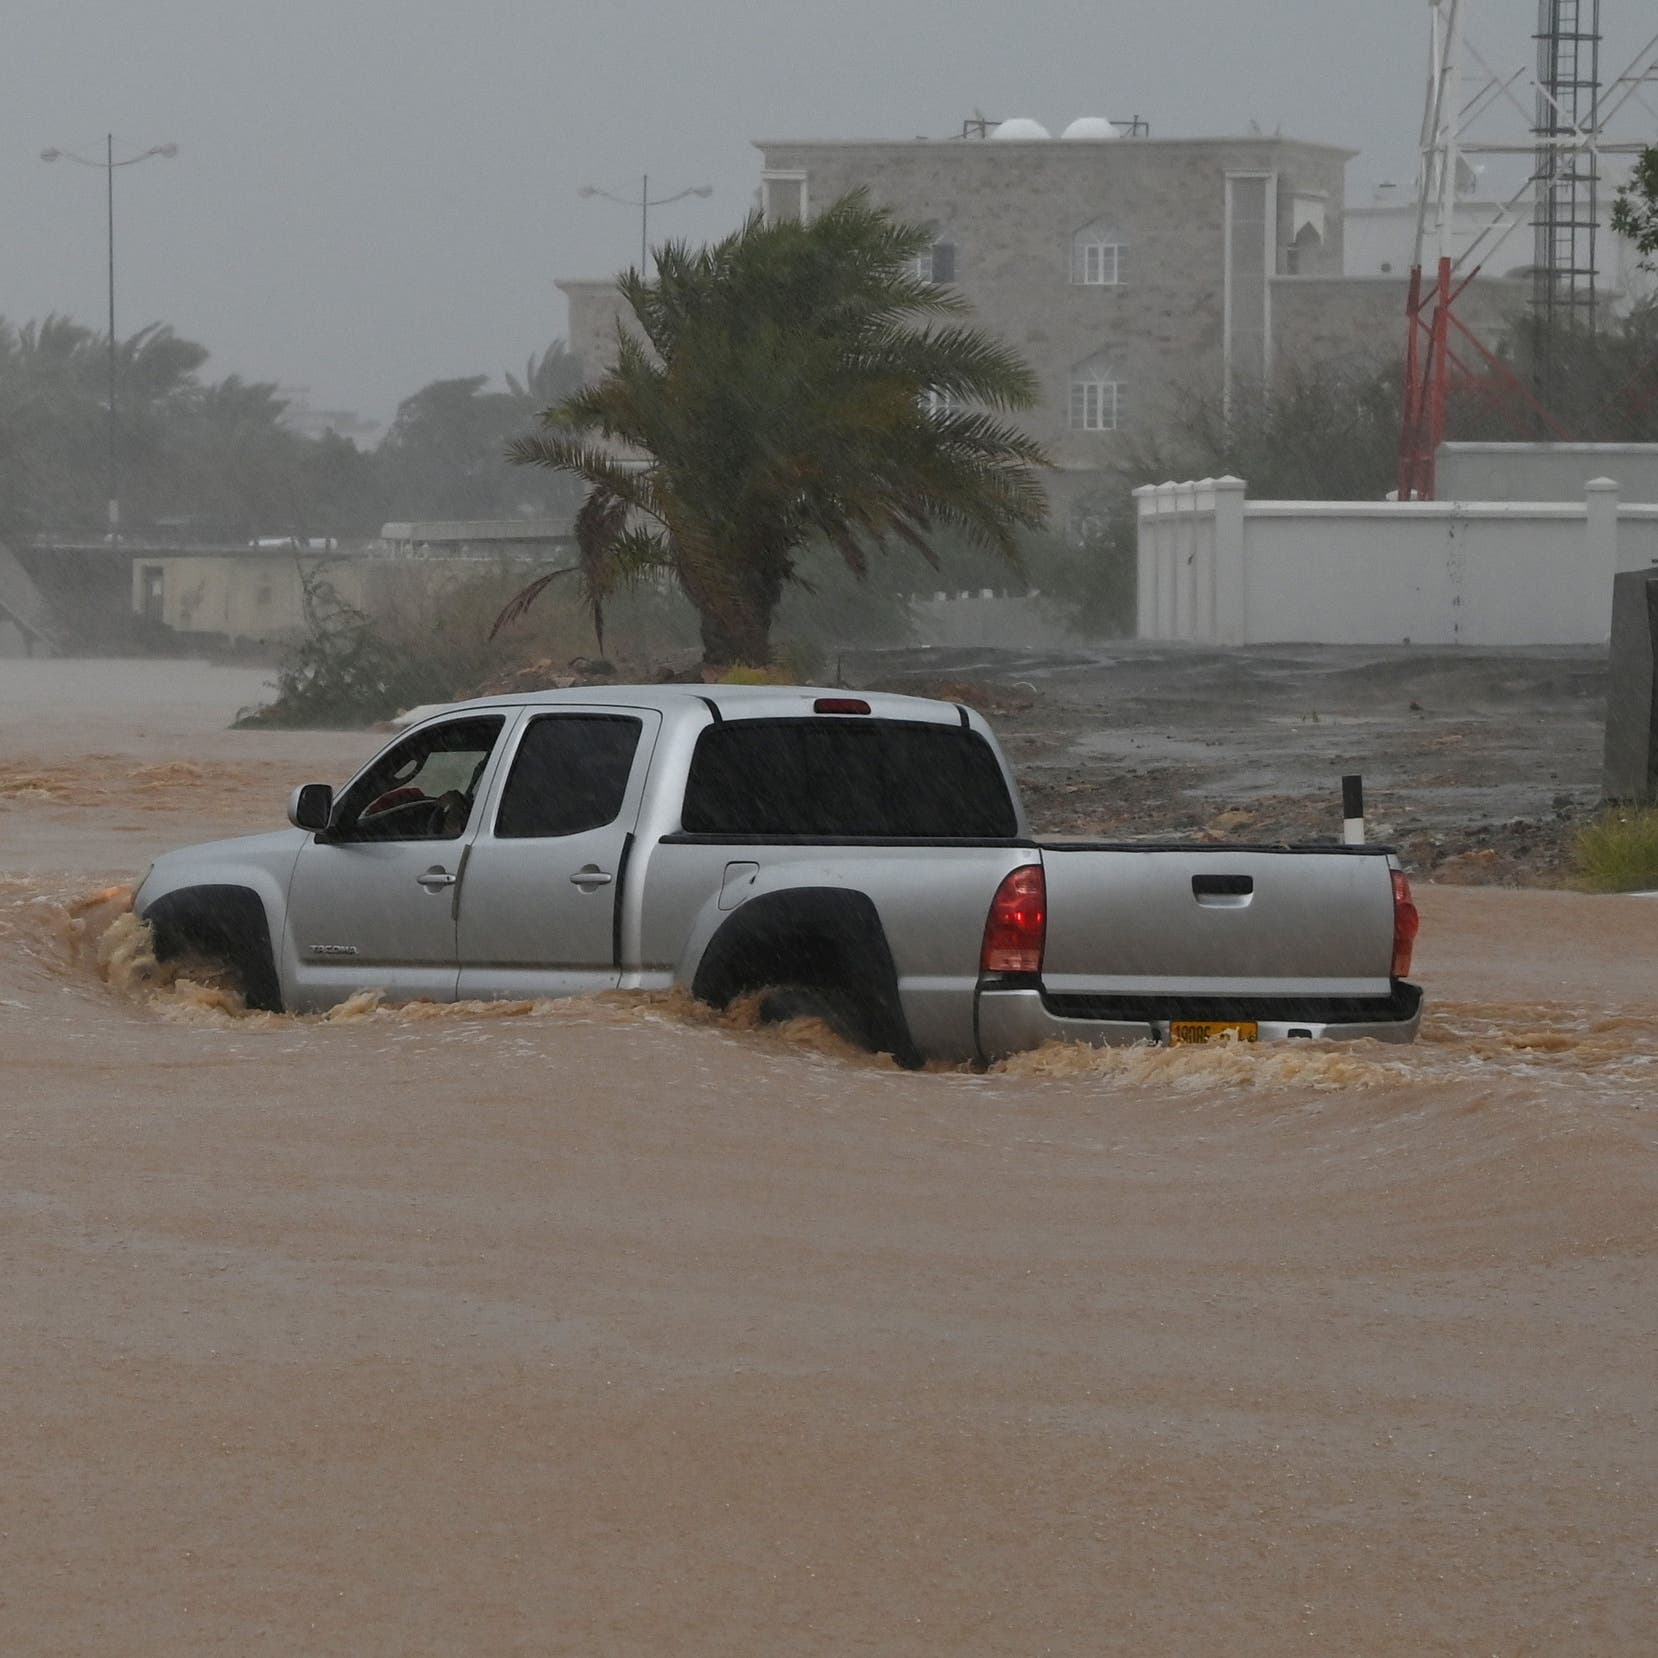 How did Oman's tropical storm 'Shaheen' get its name?